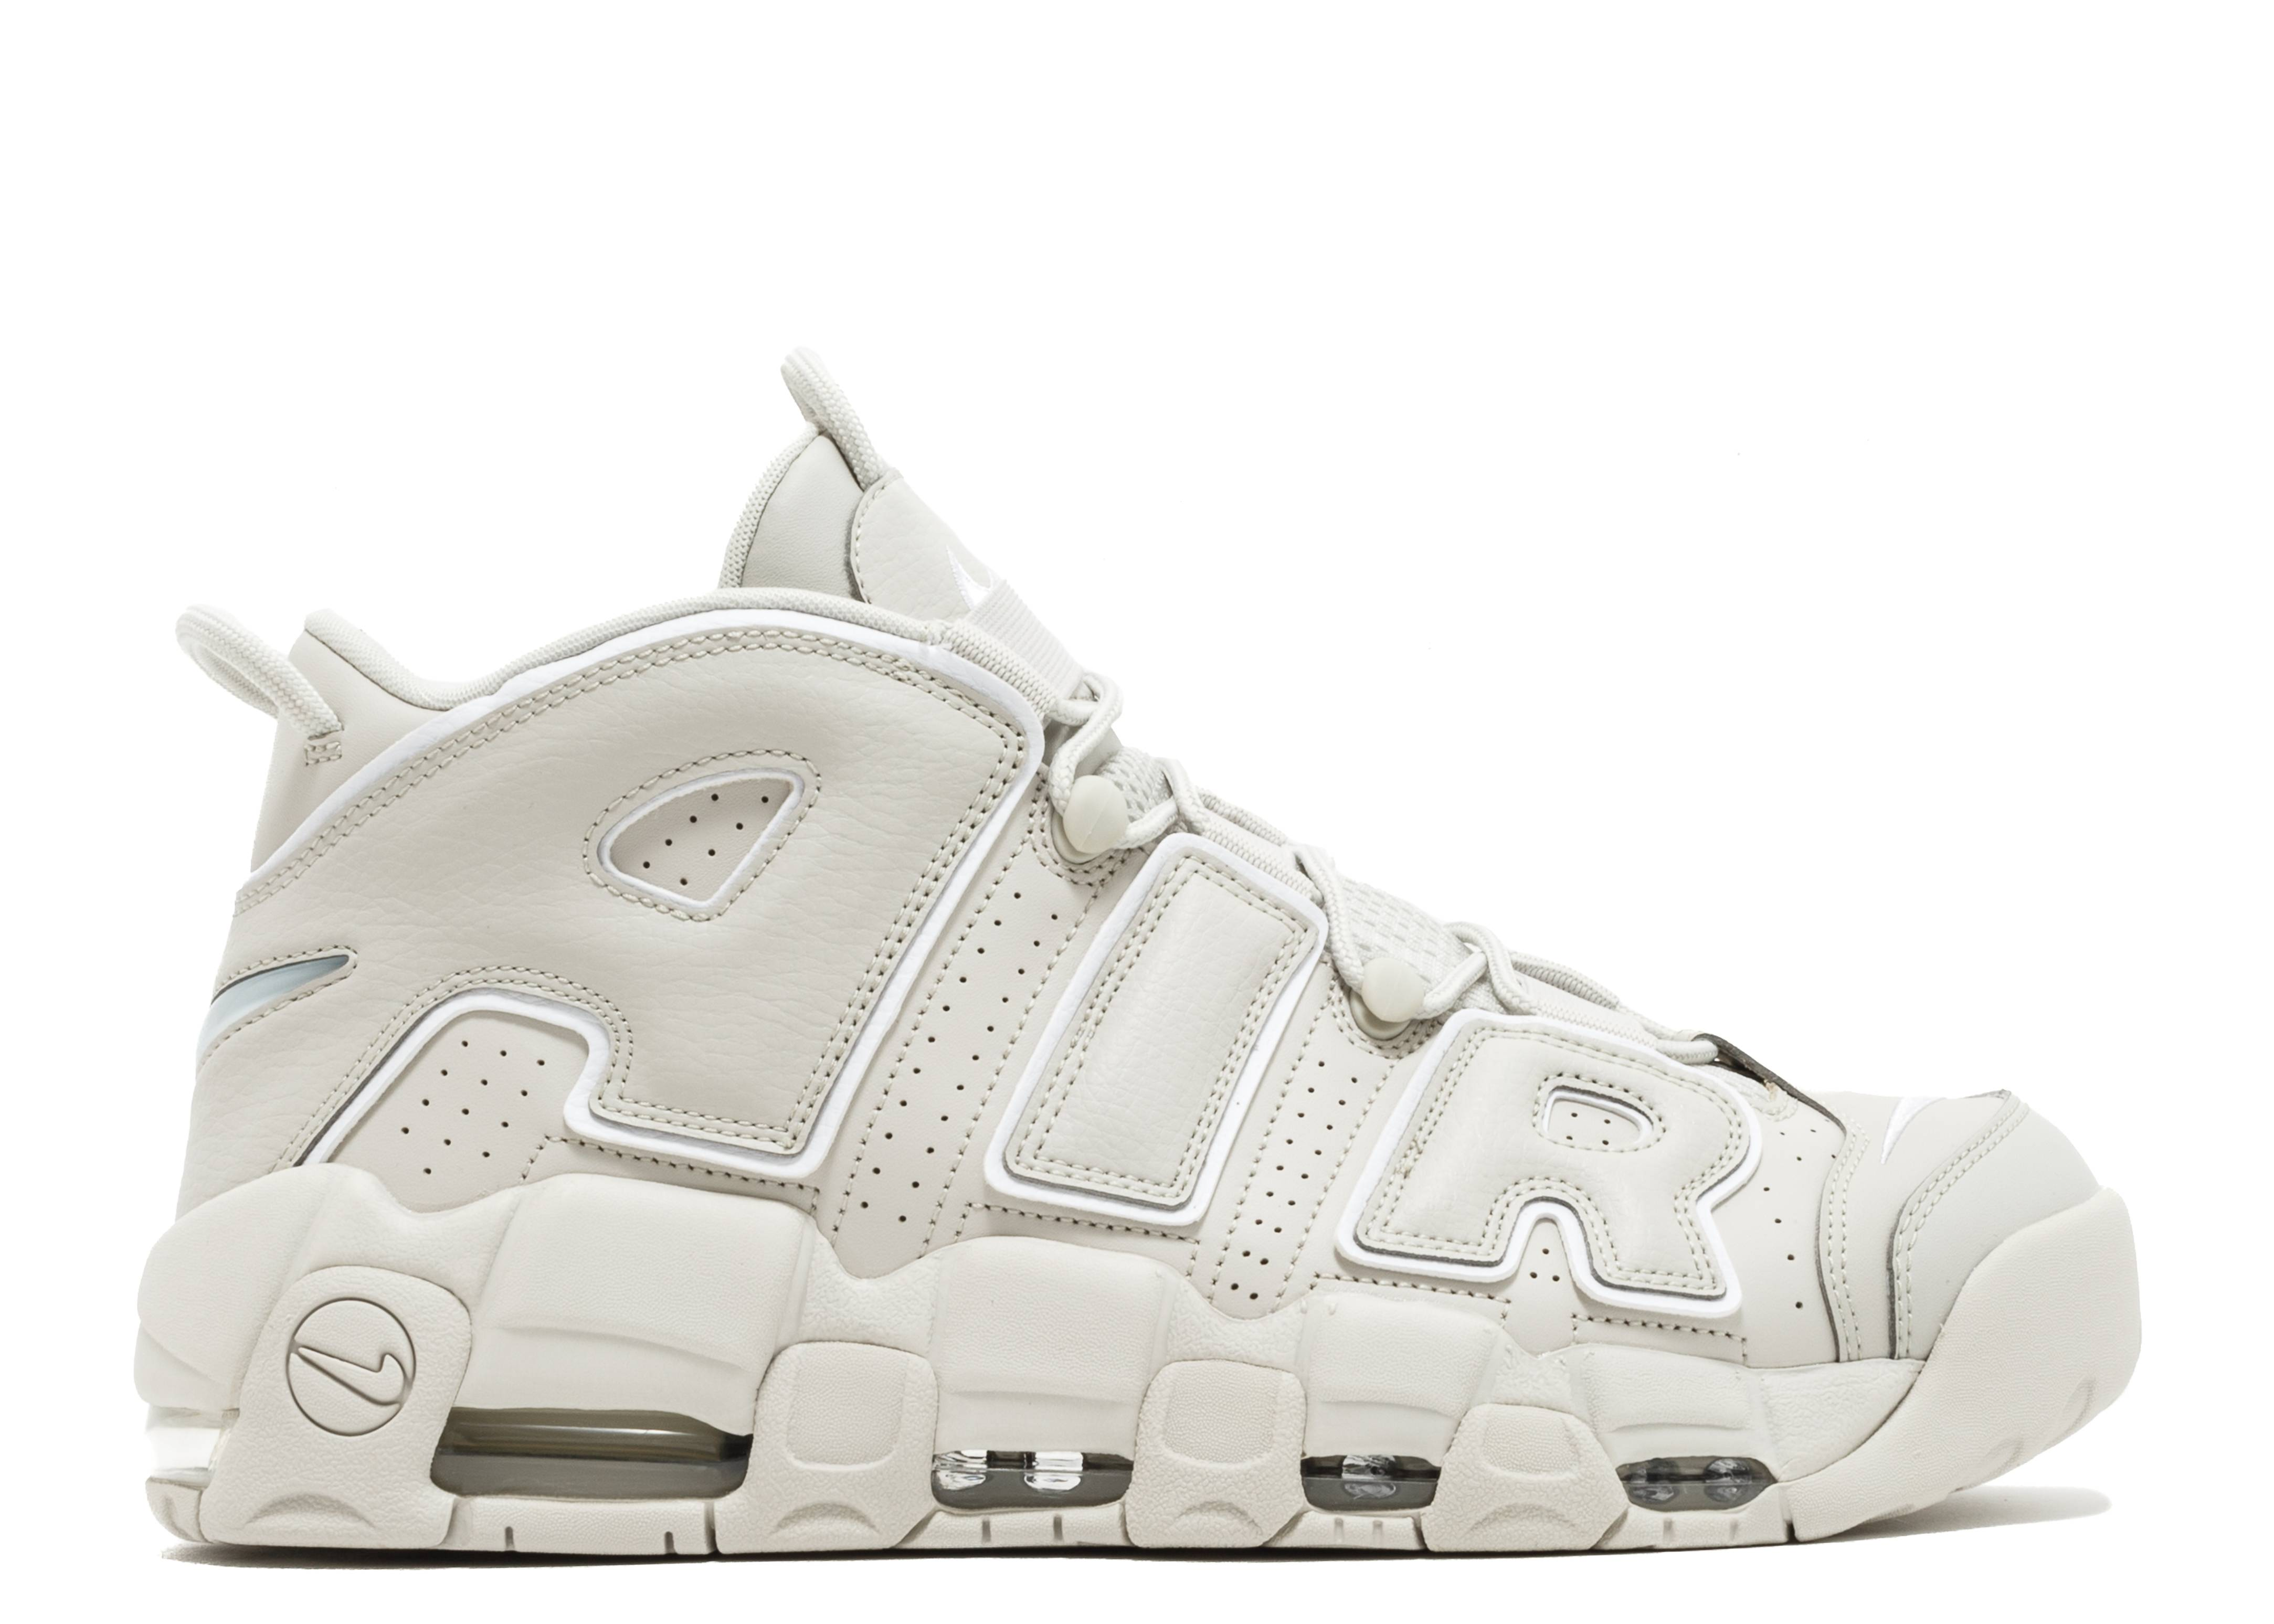 reputable site 38011 8398f nike. air more uptempo 96